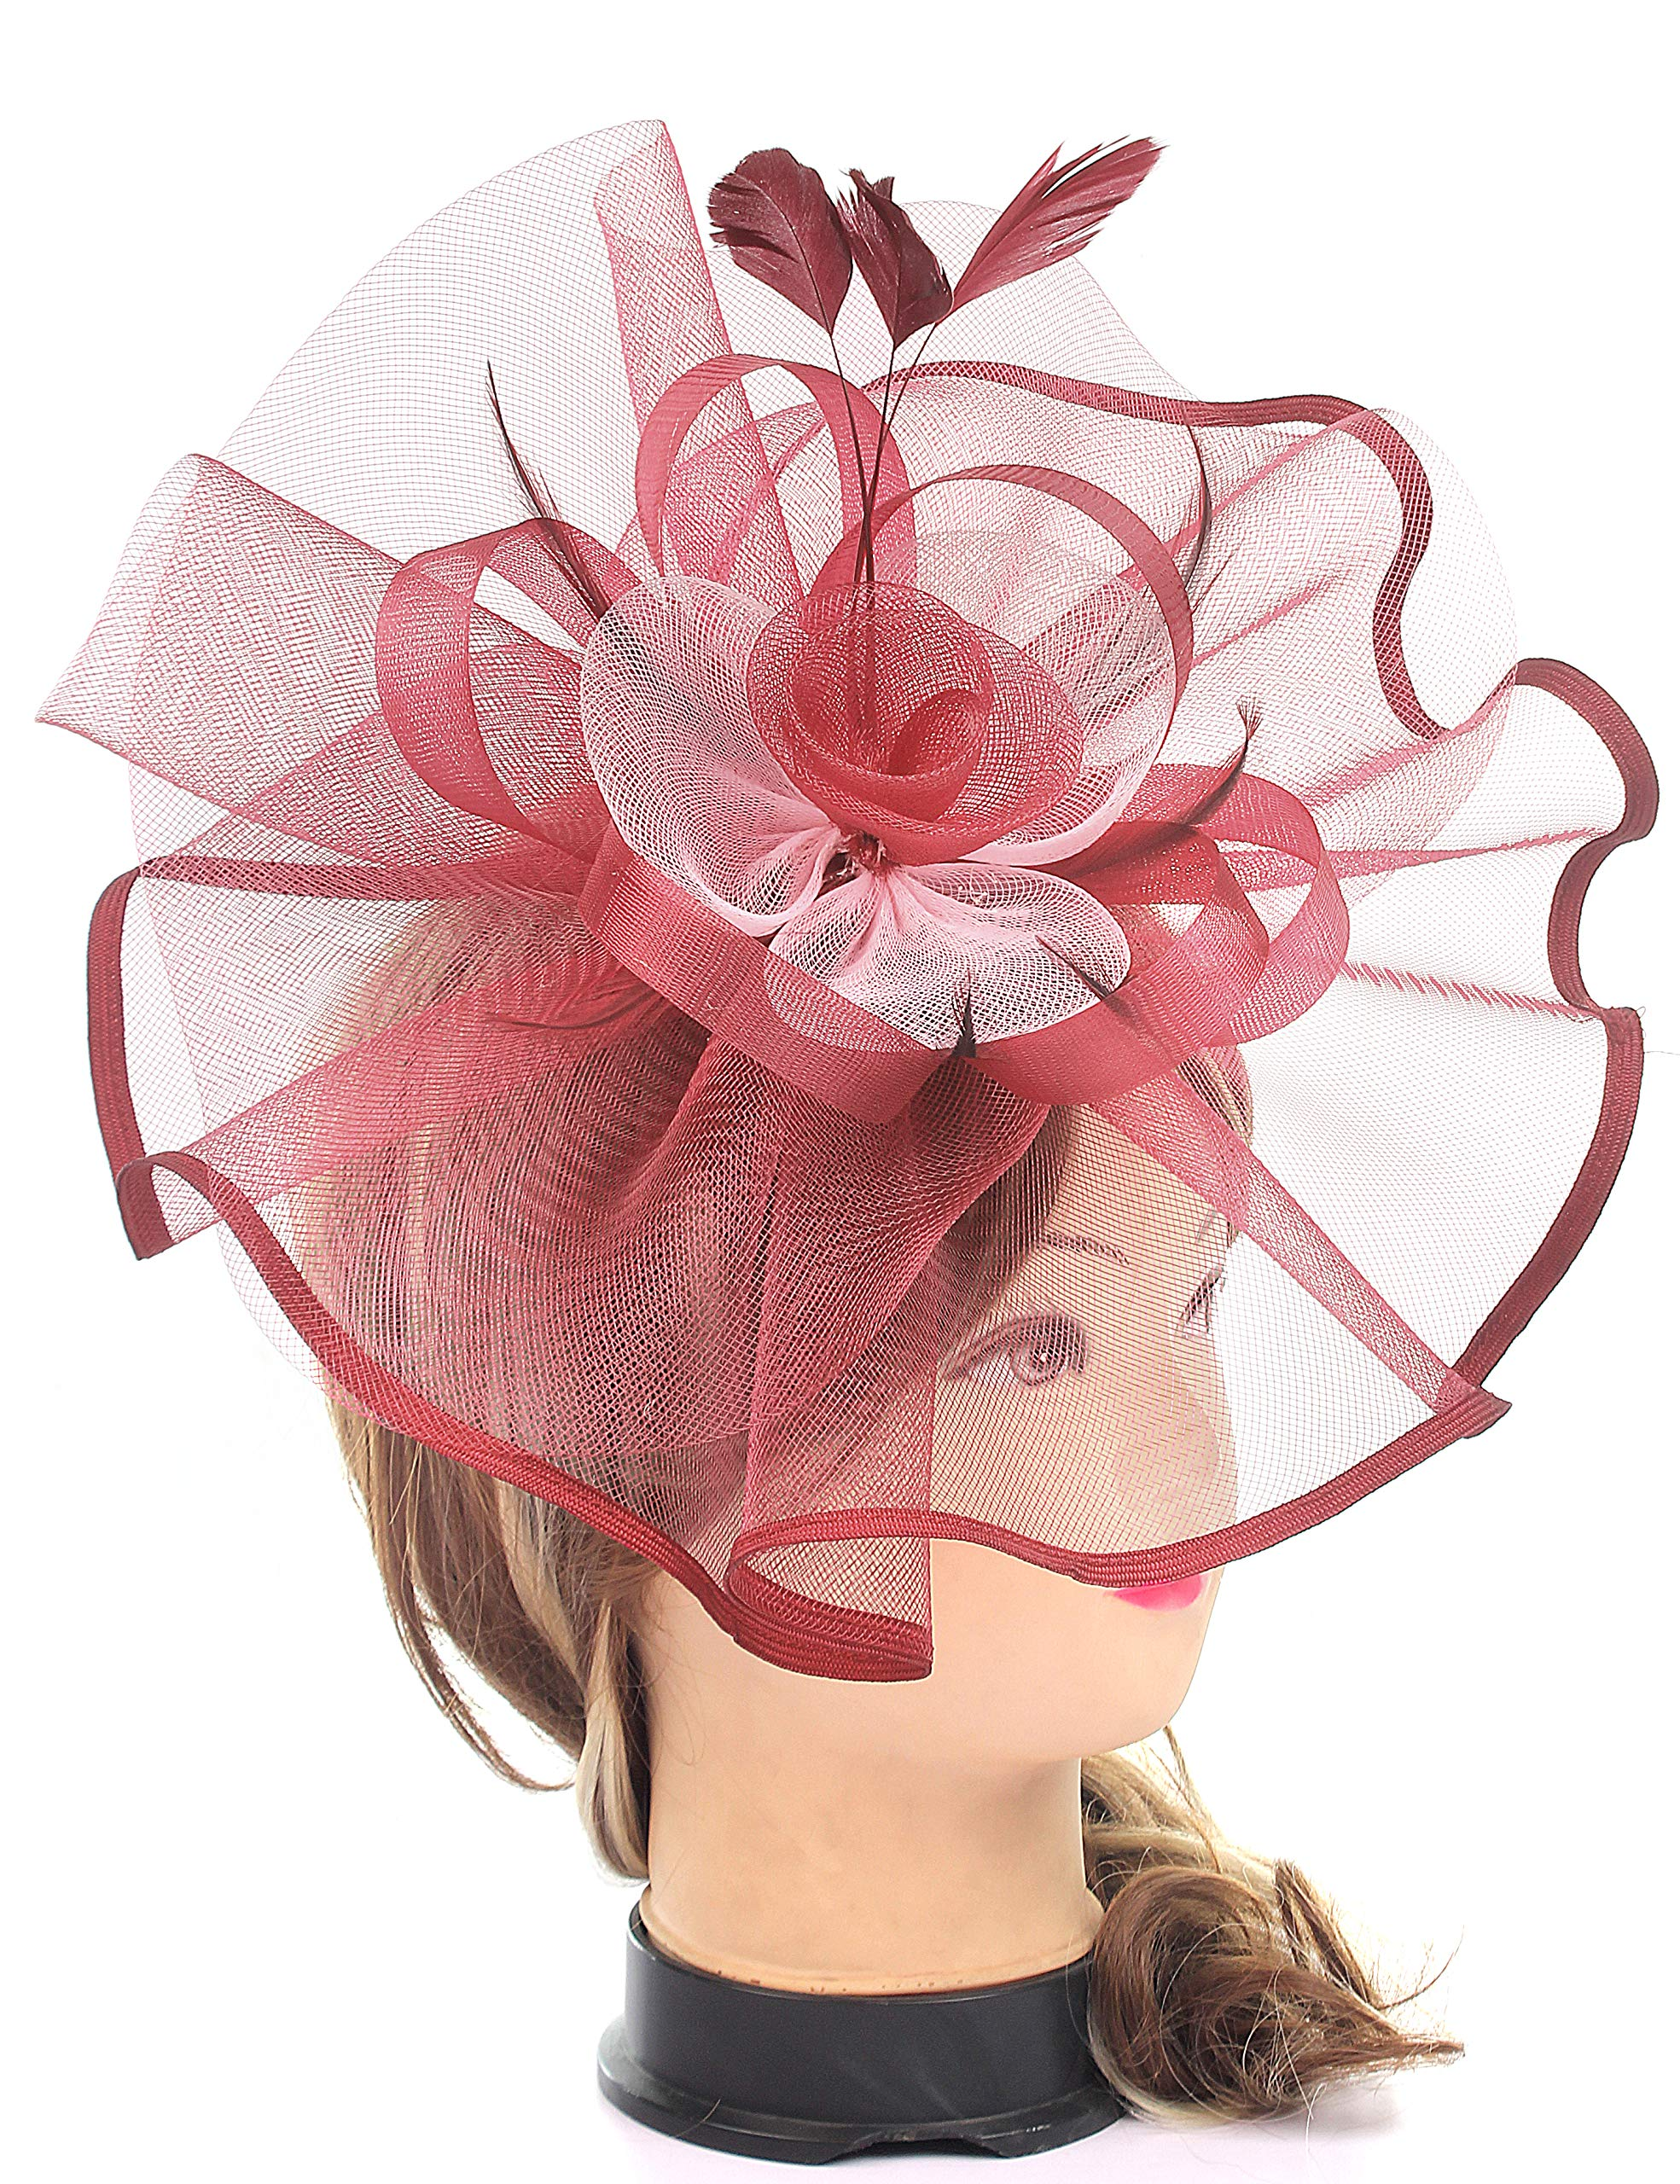 Myjoyday Fascinators Hat for Women Tea Party Headband Kentucky Derby Wedding Cocktail Flower Mesh Feathers Hair Clip (Wine Red & White)